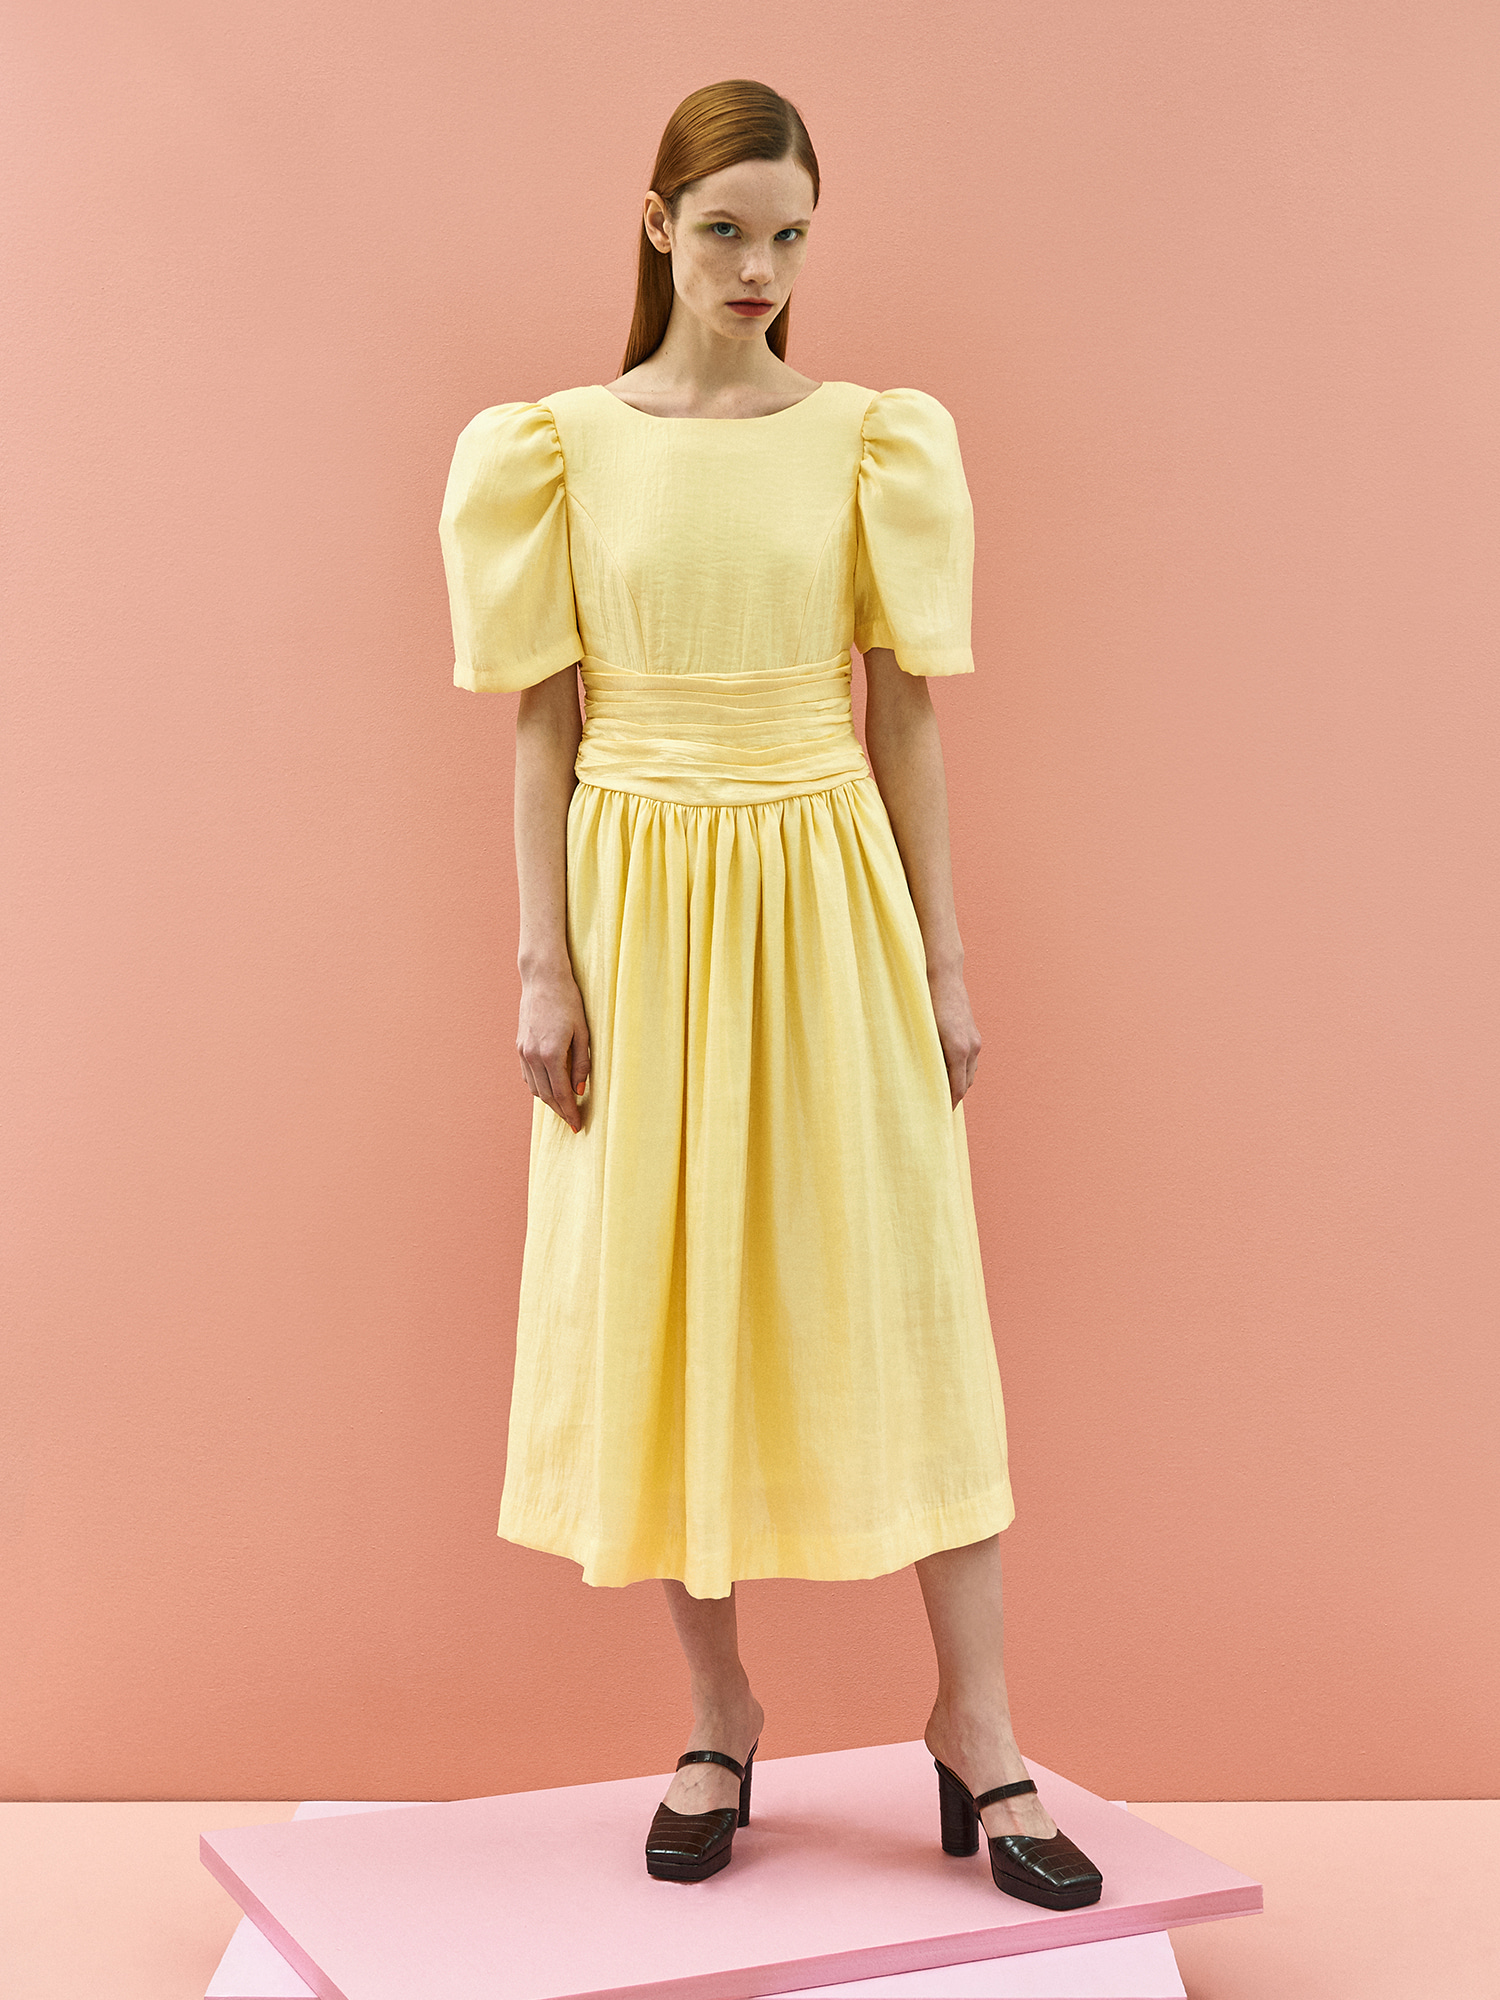 [SUMMER BIG SALE]Retro Ribbon Dress in Lemon